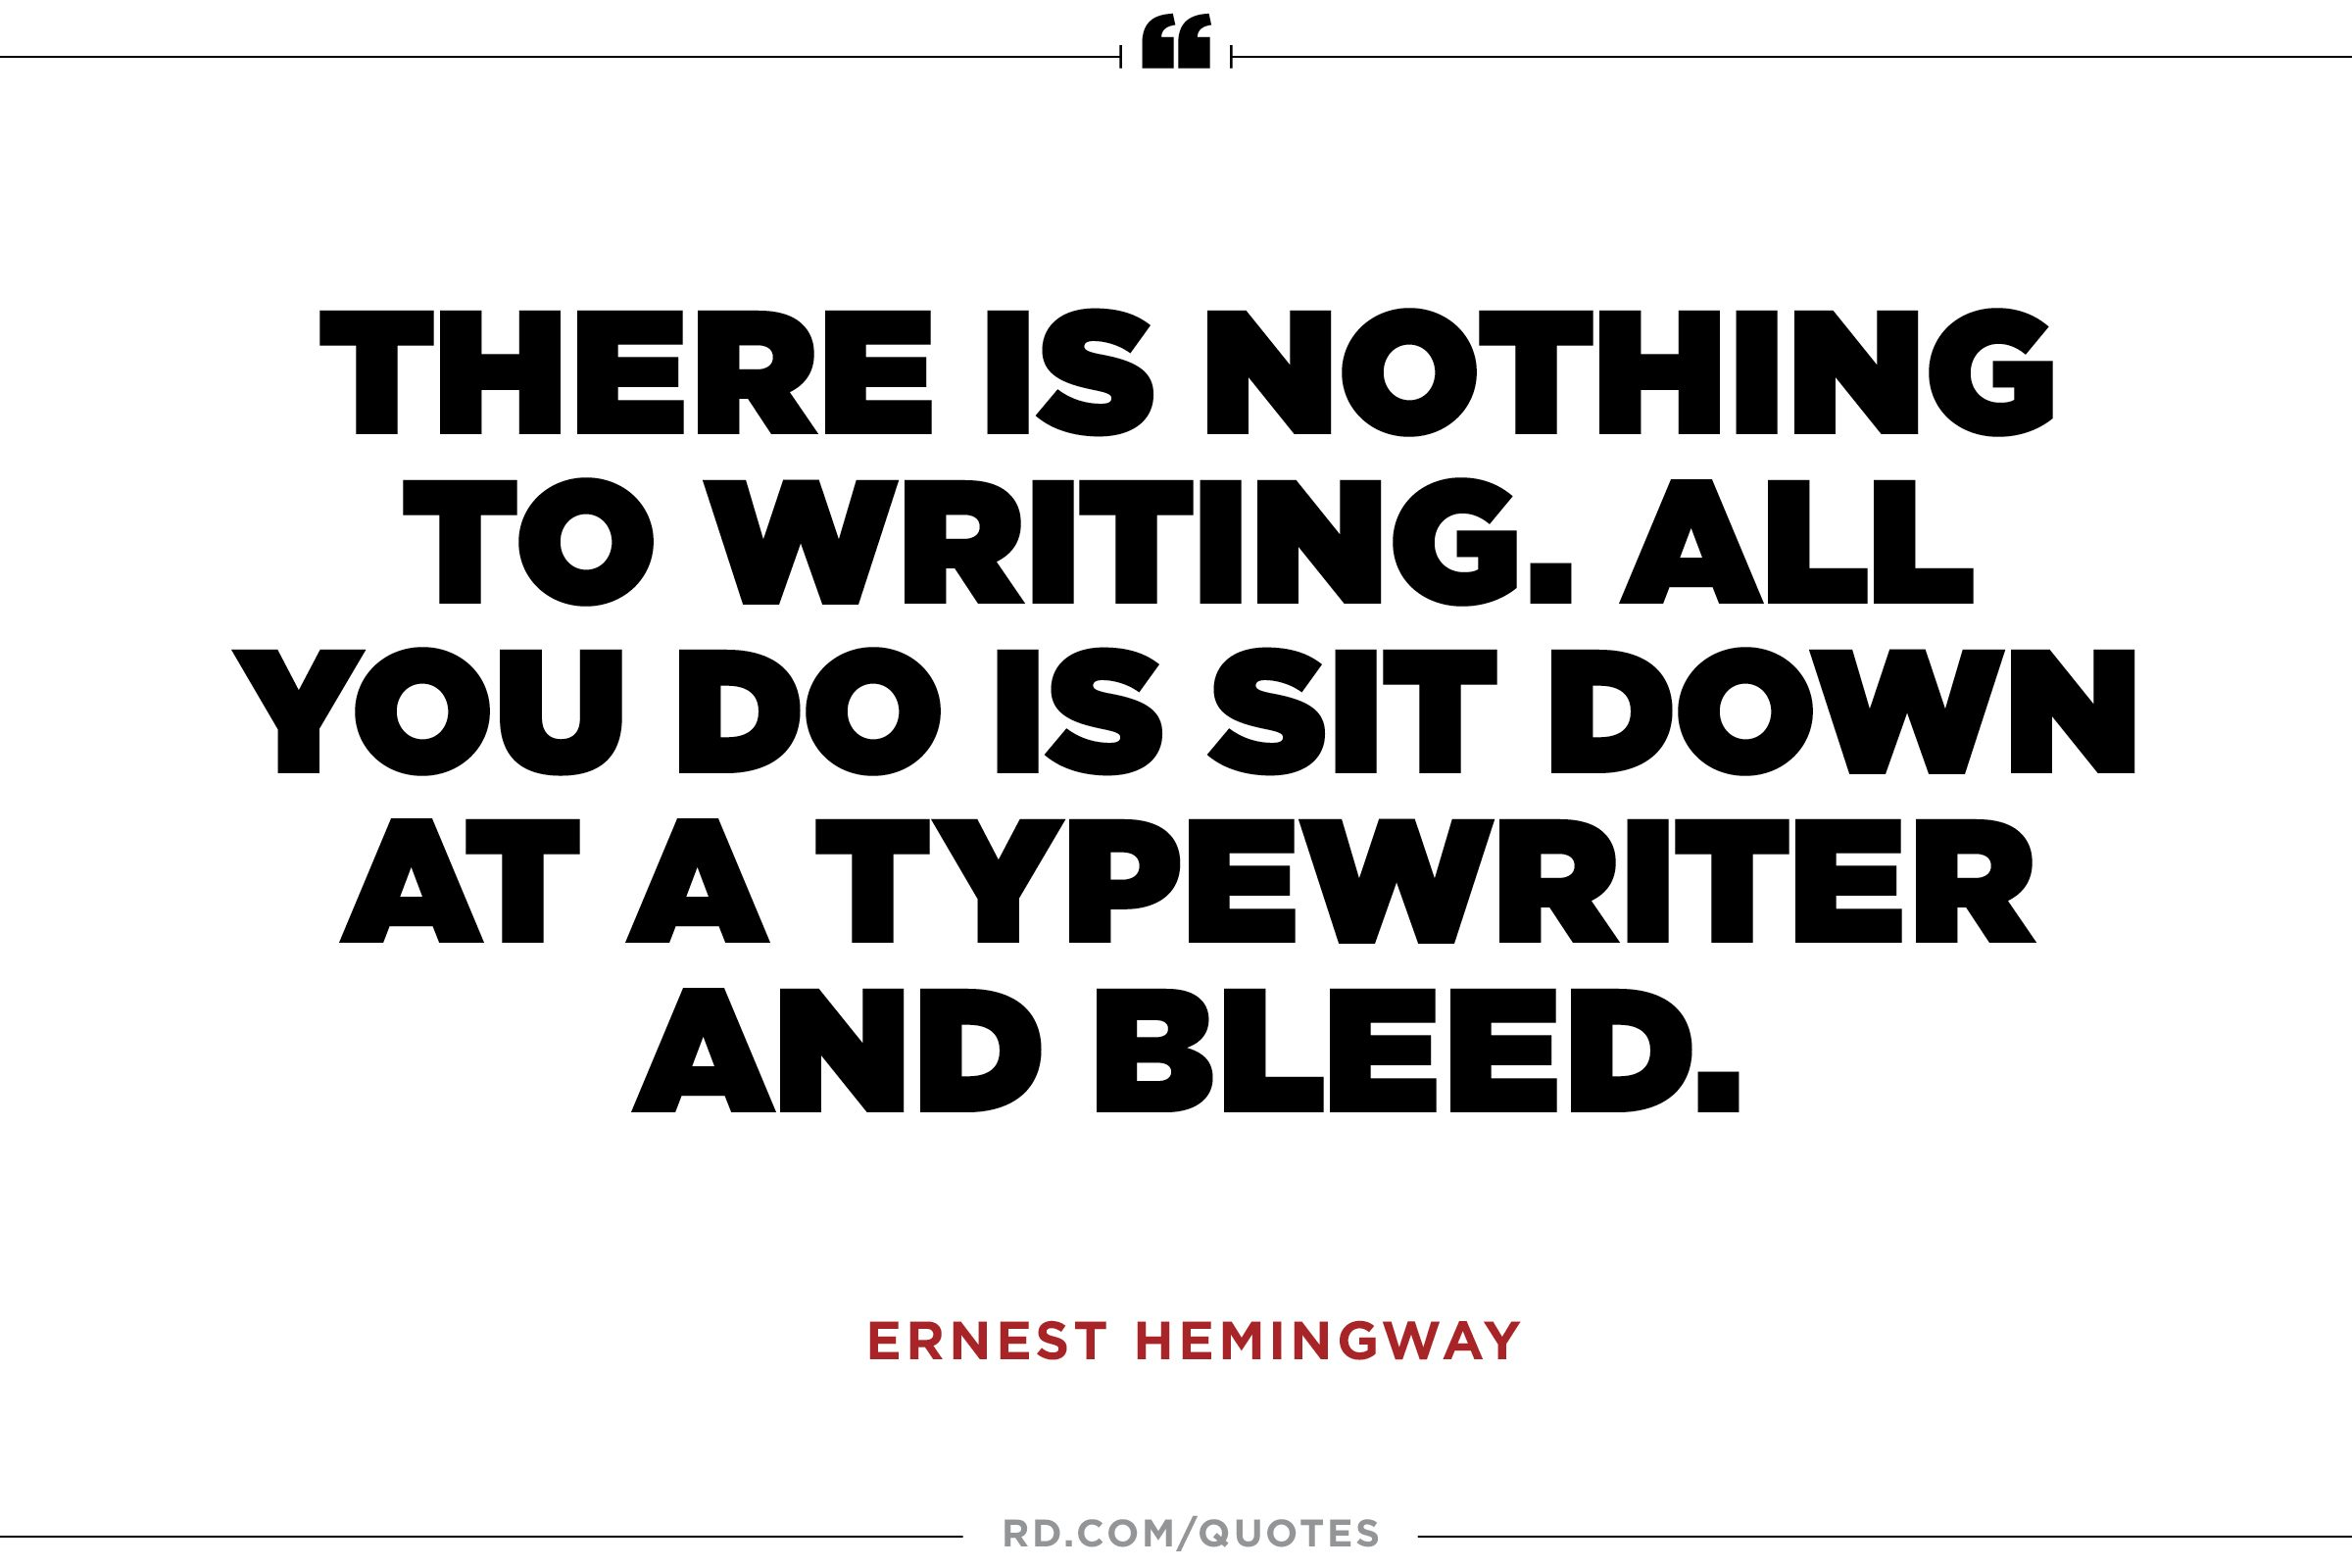 ernest hemingway biography essay example Ernest hemingway biography author (1899–1961) nobel prize winner ernest hemingway is seen as one of the great american 20th century novelists, and is known for works like 'a farewell to arms.